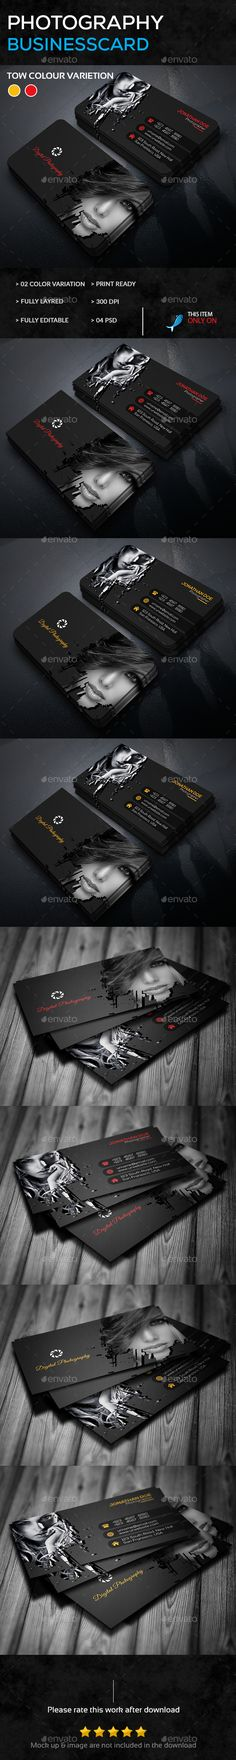 Photography Business Card Template PSD #download